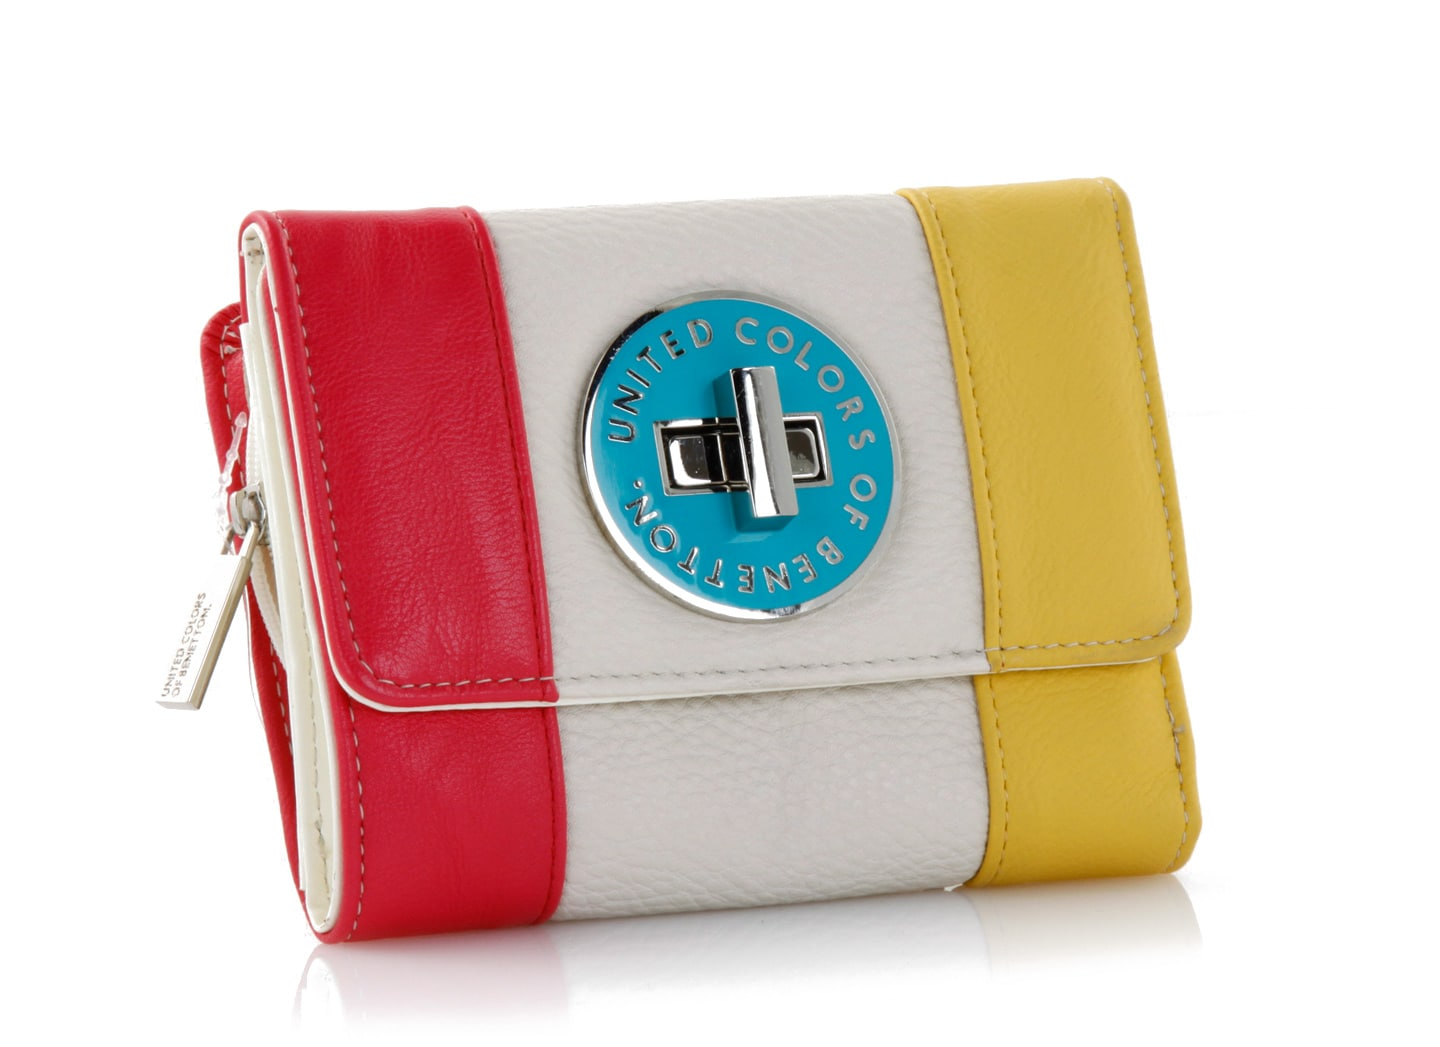 4a60aadfb7 Benetton Joan Small Flap Wallet